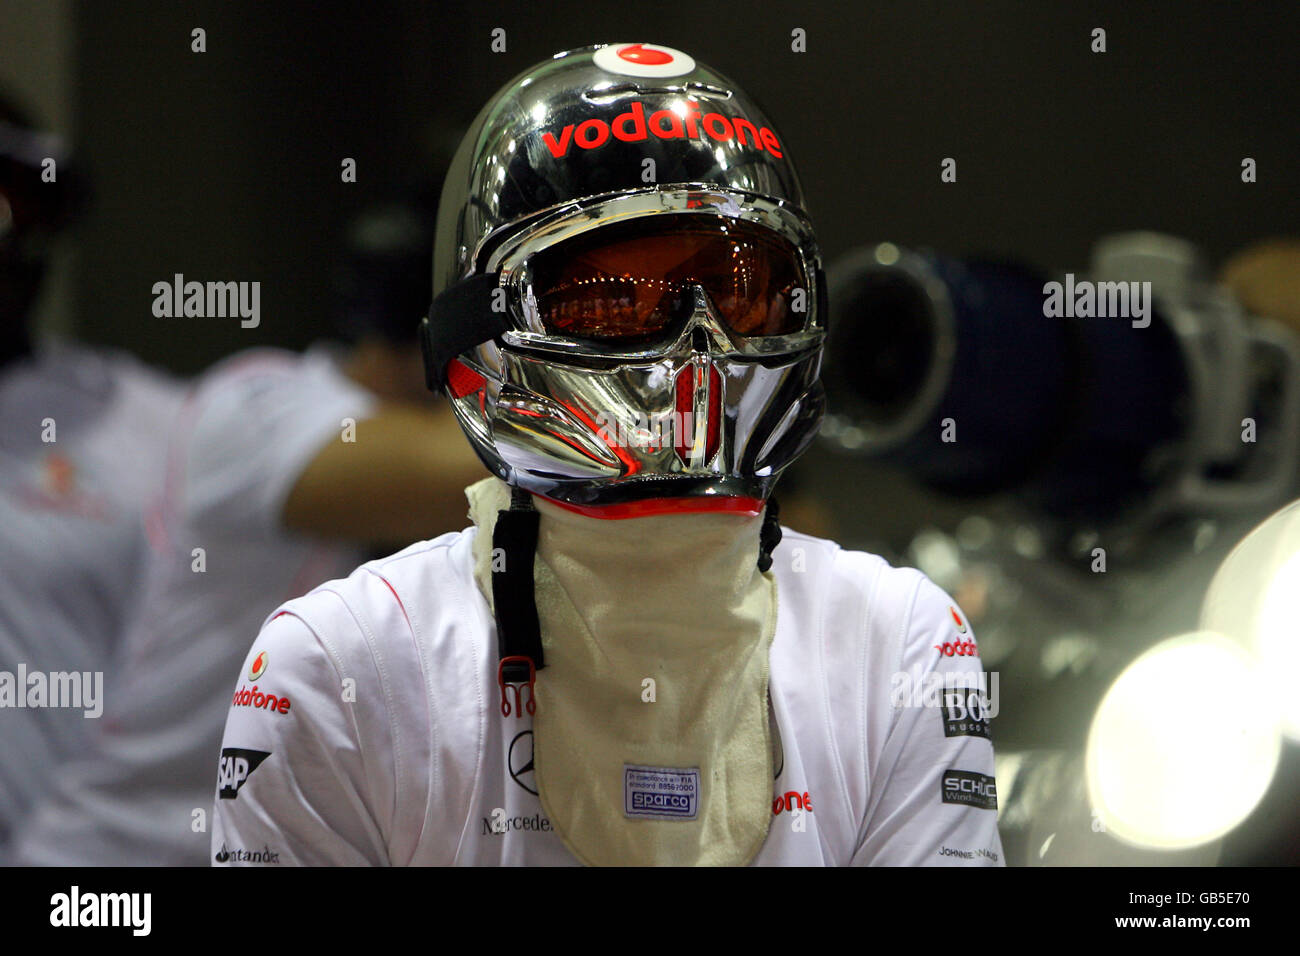 Singapore Grand Prix Vodafone Stock Photos & Singapore Grand Prix